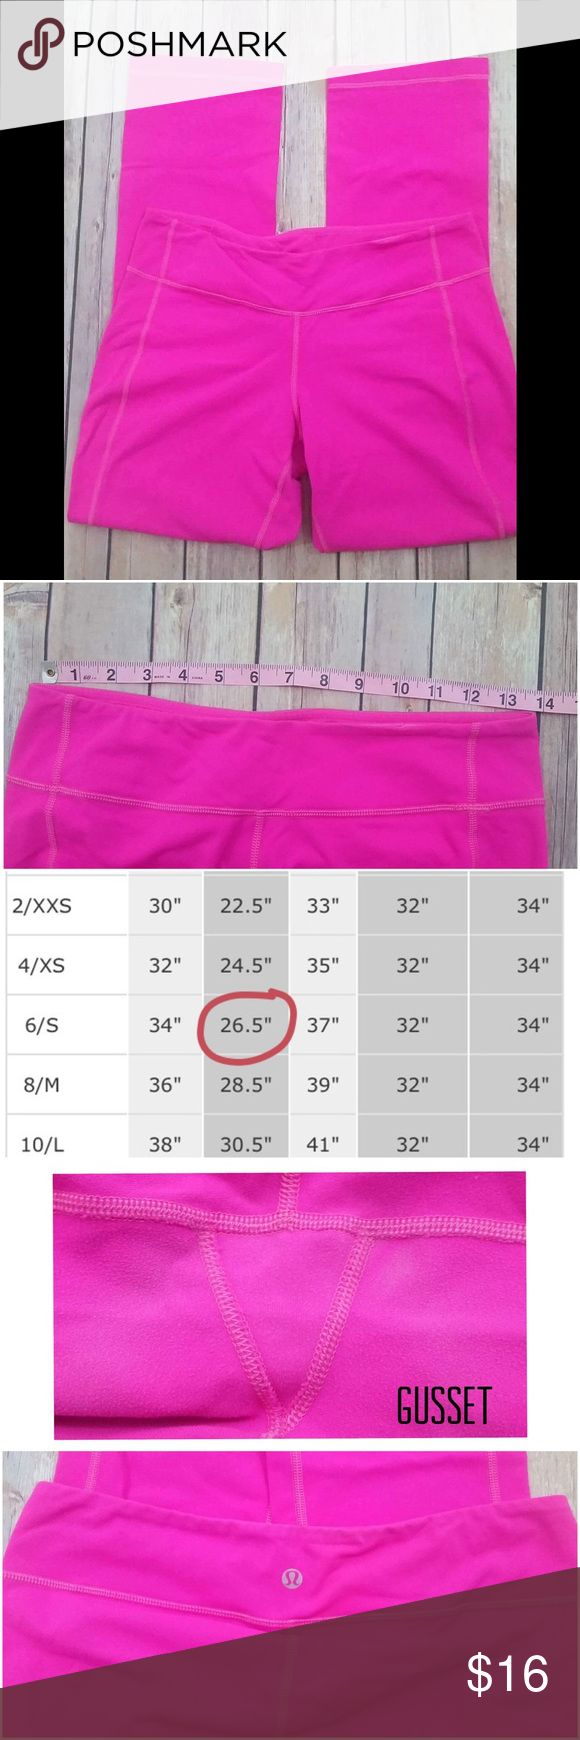 Lululemon- Crops- Bright Pink Very cute! They do show wear. I pictured areas and added a waist measurement since there is no attached tag or size dot. Has fade and piling in gusset area, a spot behind left knee that might come out with stain remover. I will price in consideration of signs of wear. No holes, rips, pet/smoke free.  016 lululemon athletica Pants Ankle & Cropped